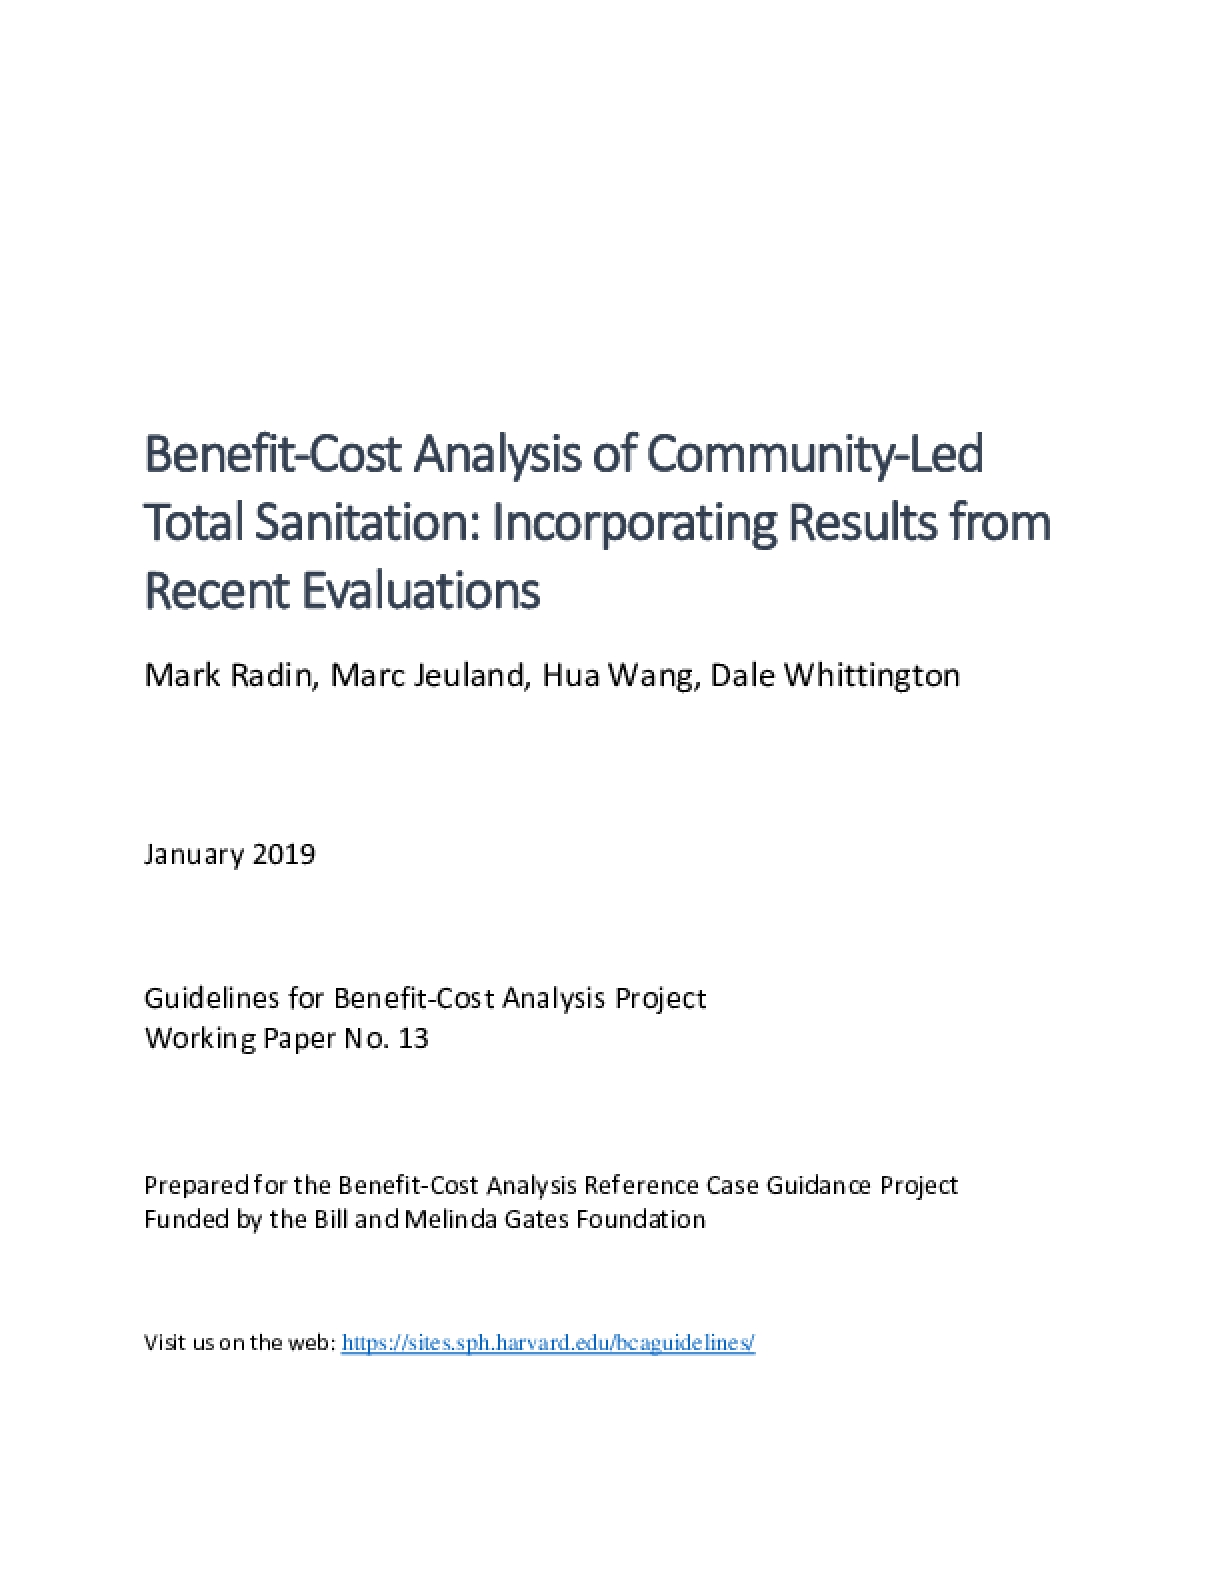 Benefit-Cost Analysis of Community-Led  Total Sanitation: Incorporating Results from  Recent Evaluations